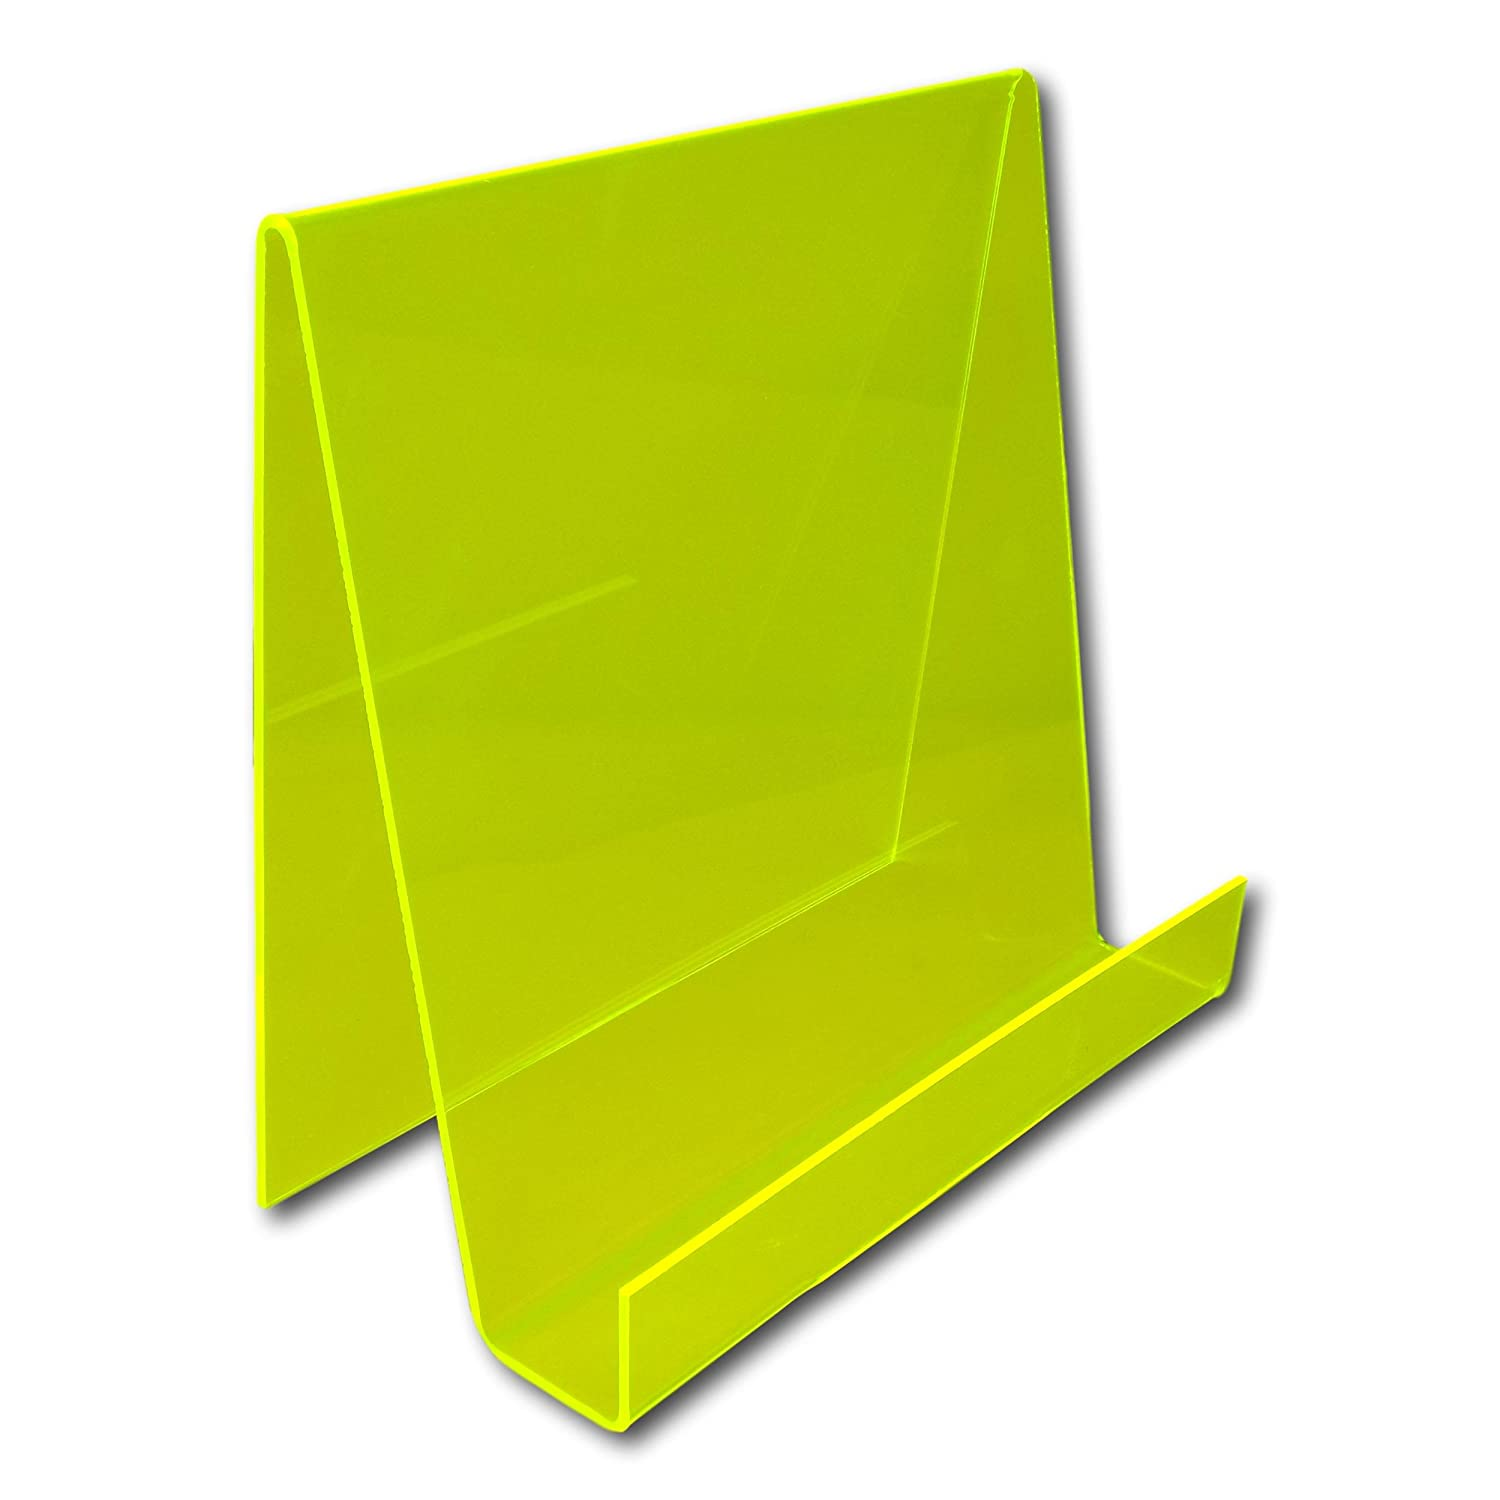 Perfect for Schools Bubblegum Blue Libraries etc Nurseries EPOSGEAR XL Extra Large Wide Plastic Acrylic Perspex Book Plate Retail Display Stand Holder